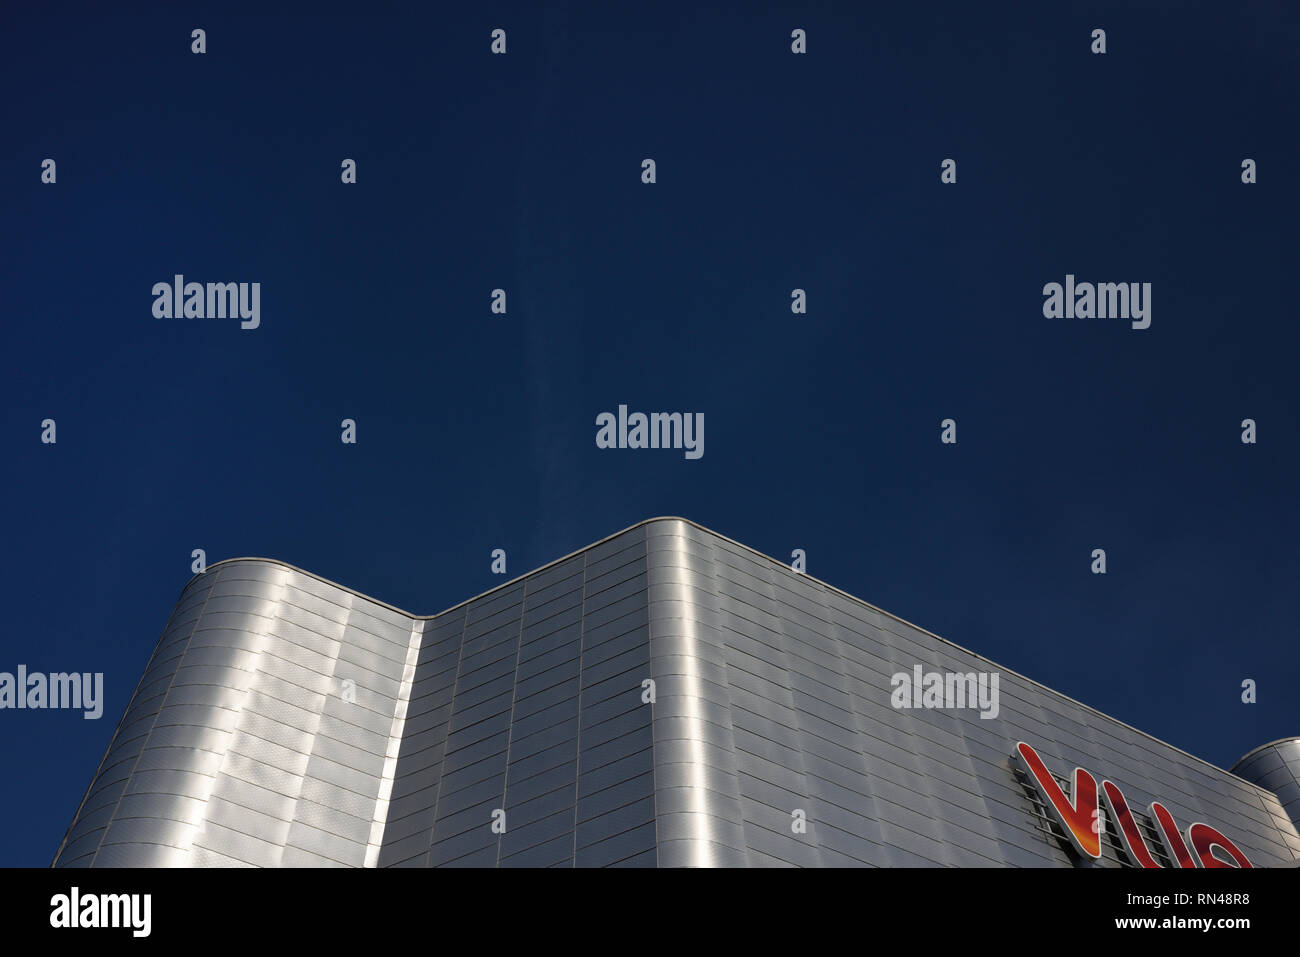 Oblique view of aluminium clad vue cinema against blue sky in the rock triangle retail and leisure development in bury lancashire uk - Stock Image